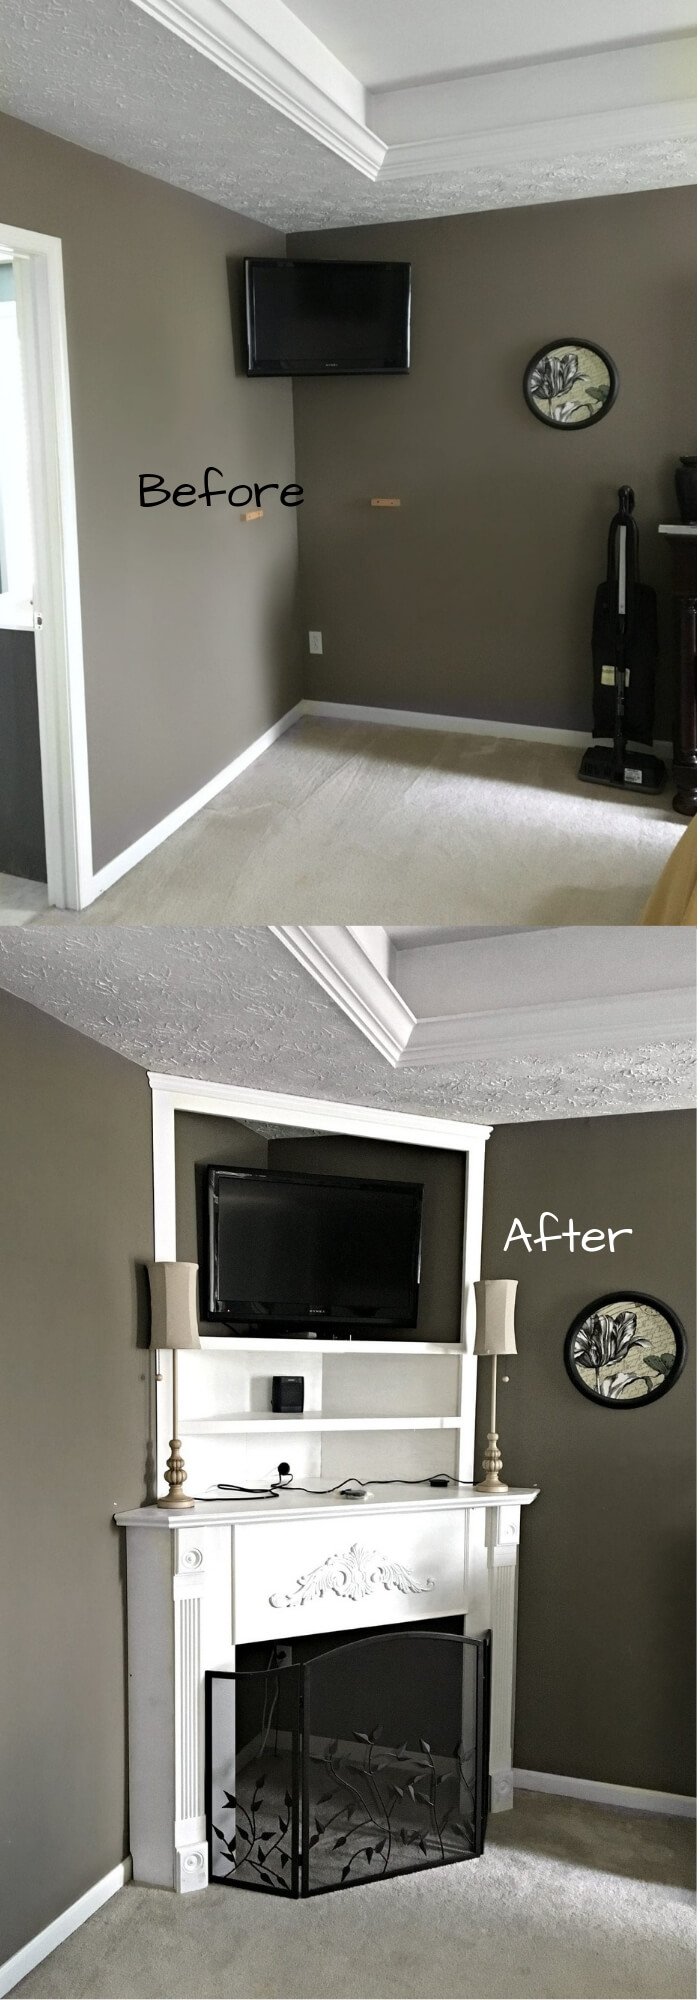 Before and After DIY Corner Fireplace Mantel